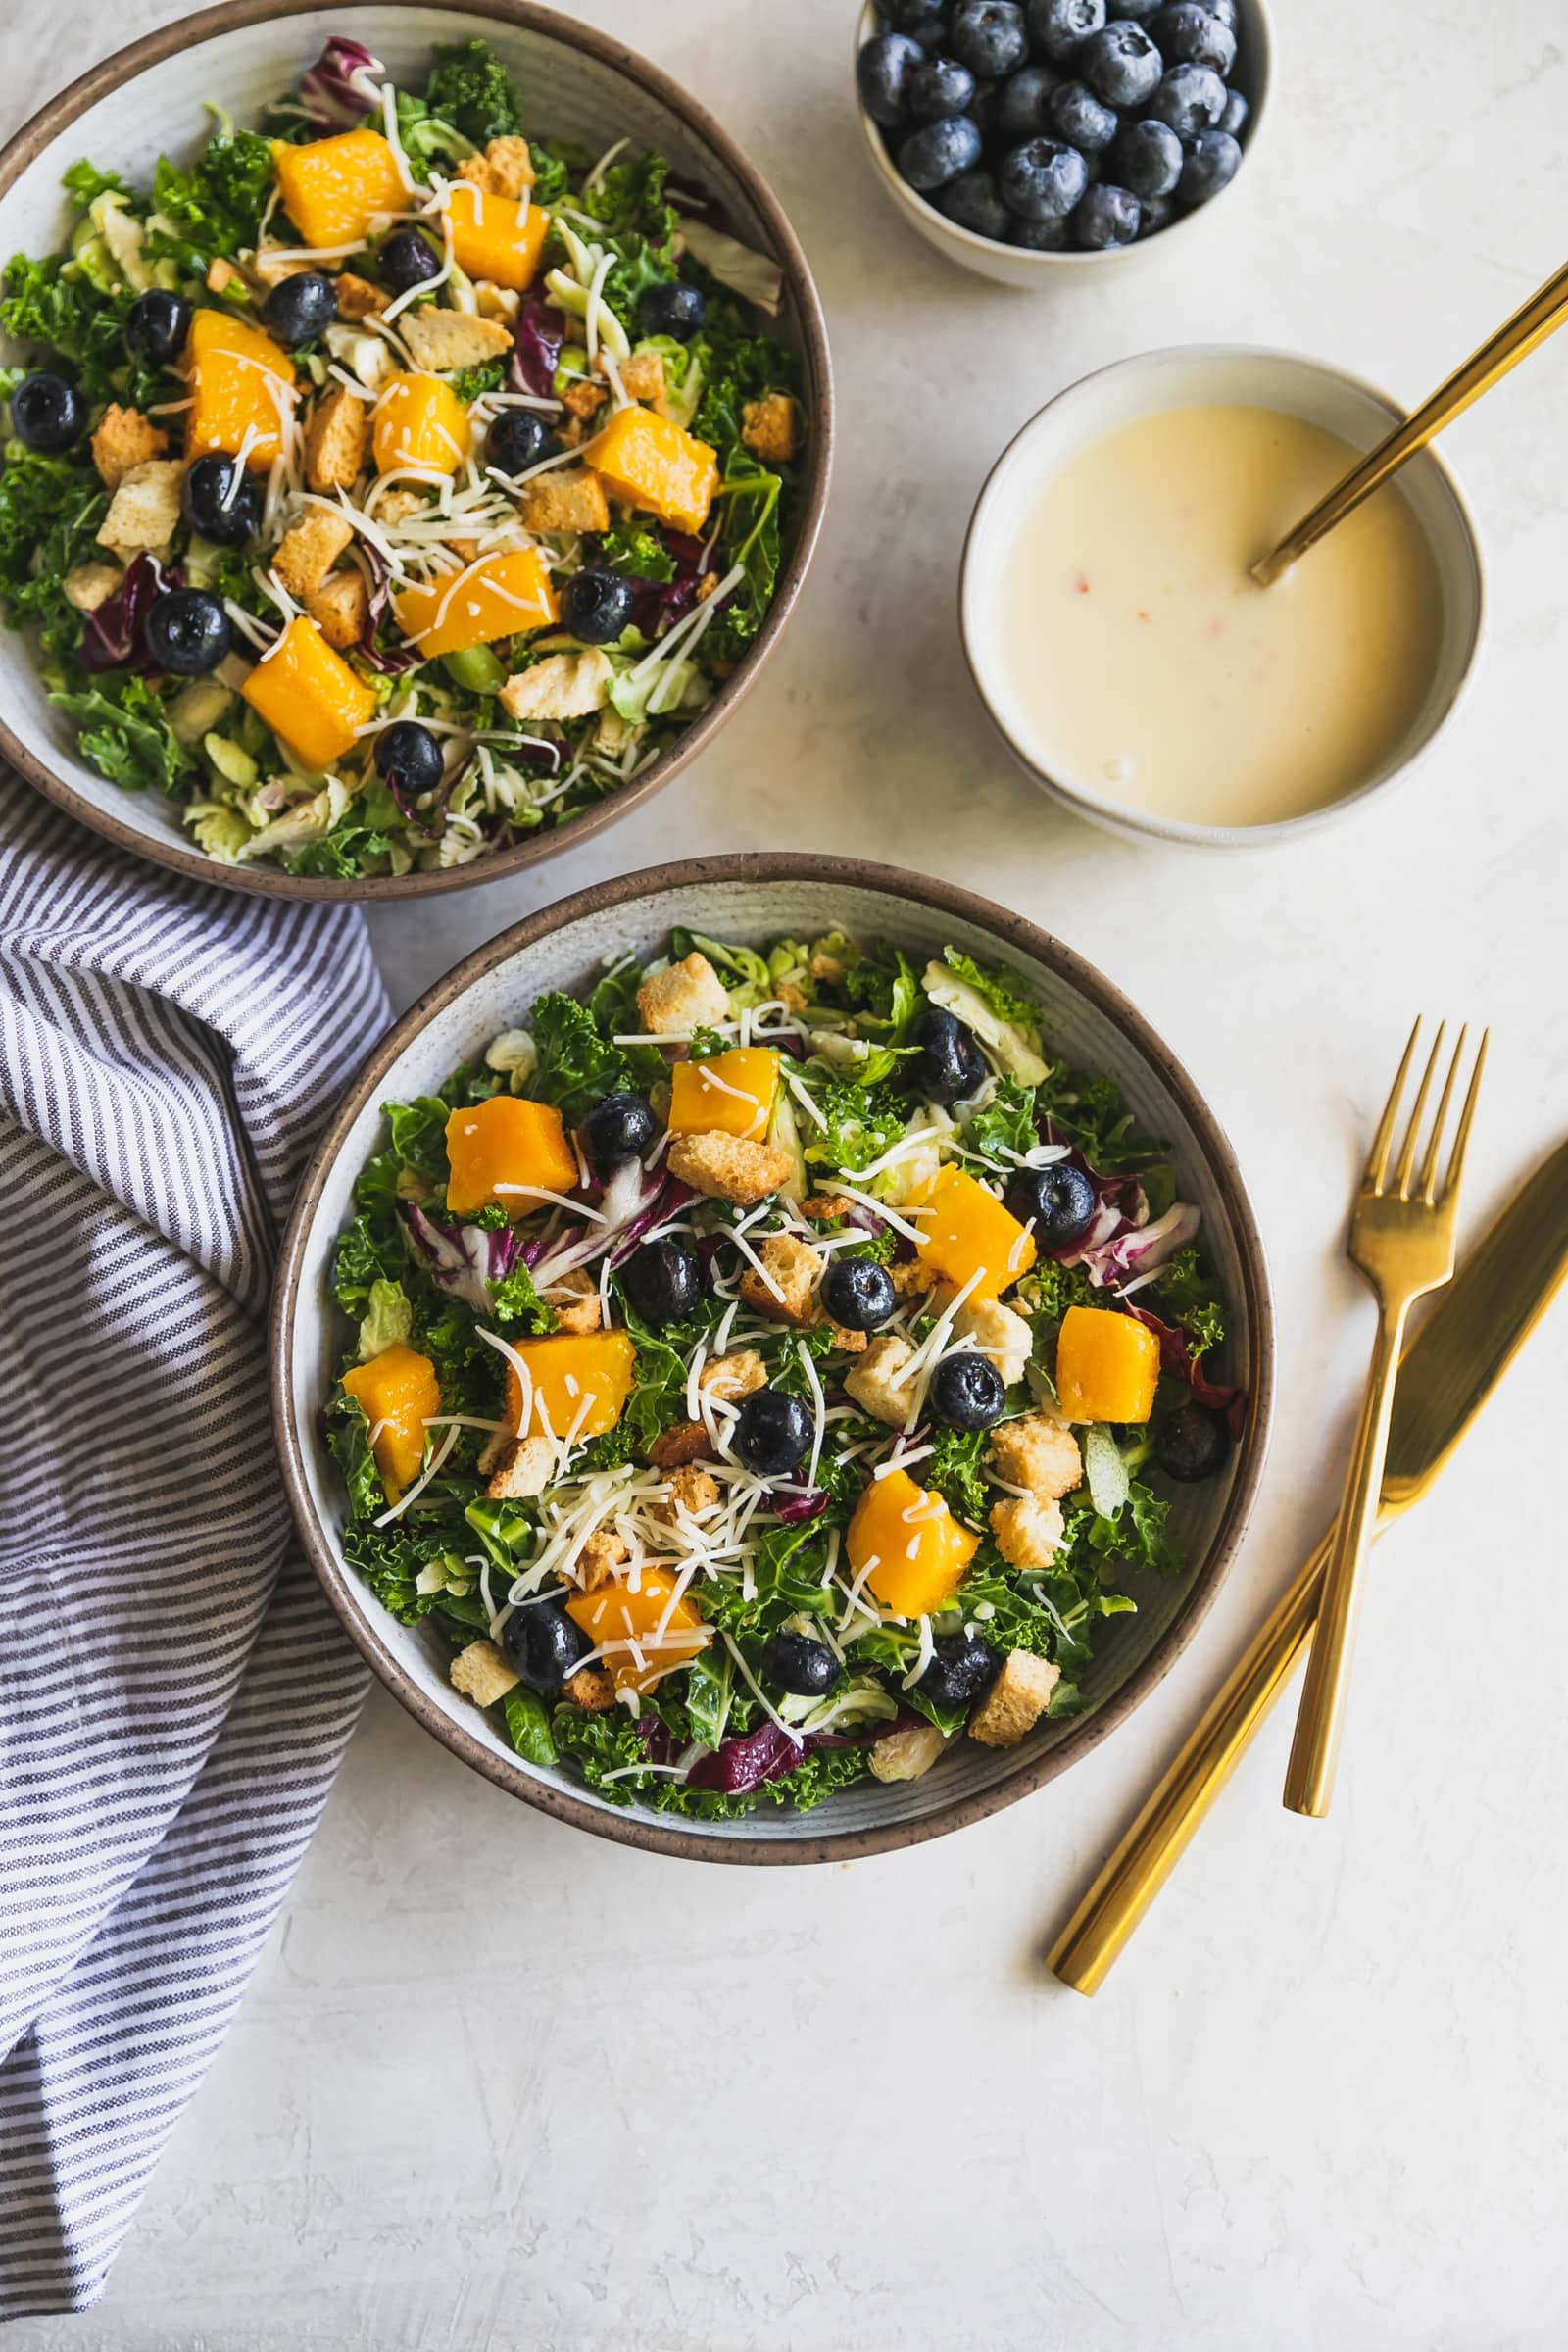 A Summer kale salad made with mango, blueberries, shaved Brussels sprouts, radicchio, Asiago cheese, Parmesan garlic croutons and tangy lemon vinaigrette. Just 3 ingredients!